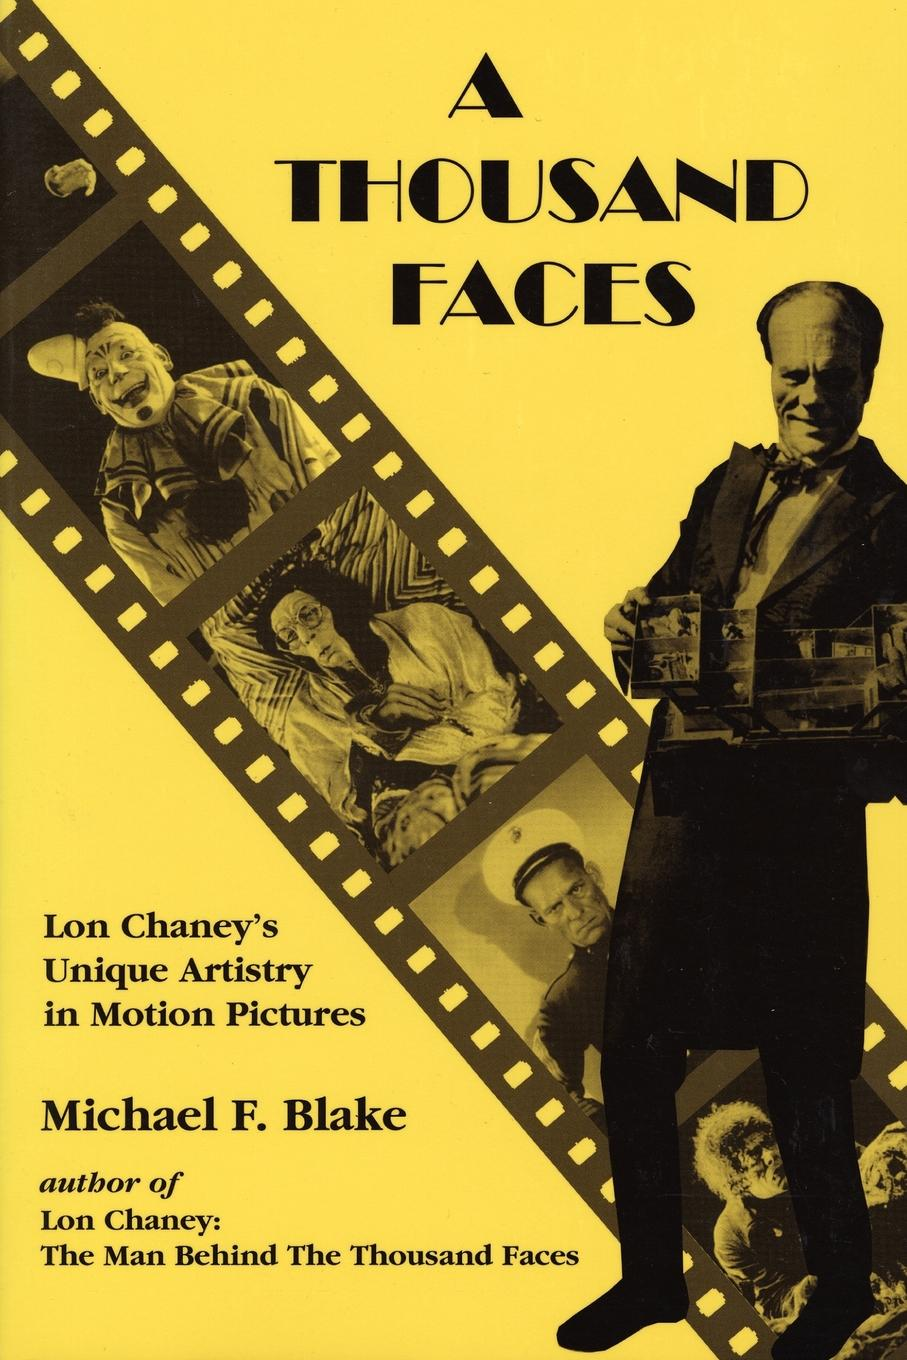 A Thousand Faces: Lon Chaney's Unique Artistry in Motion Pictures